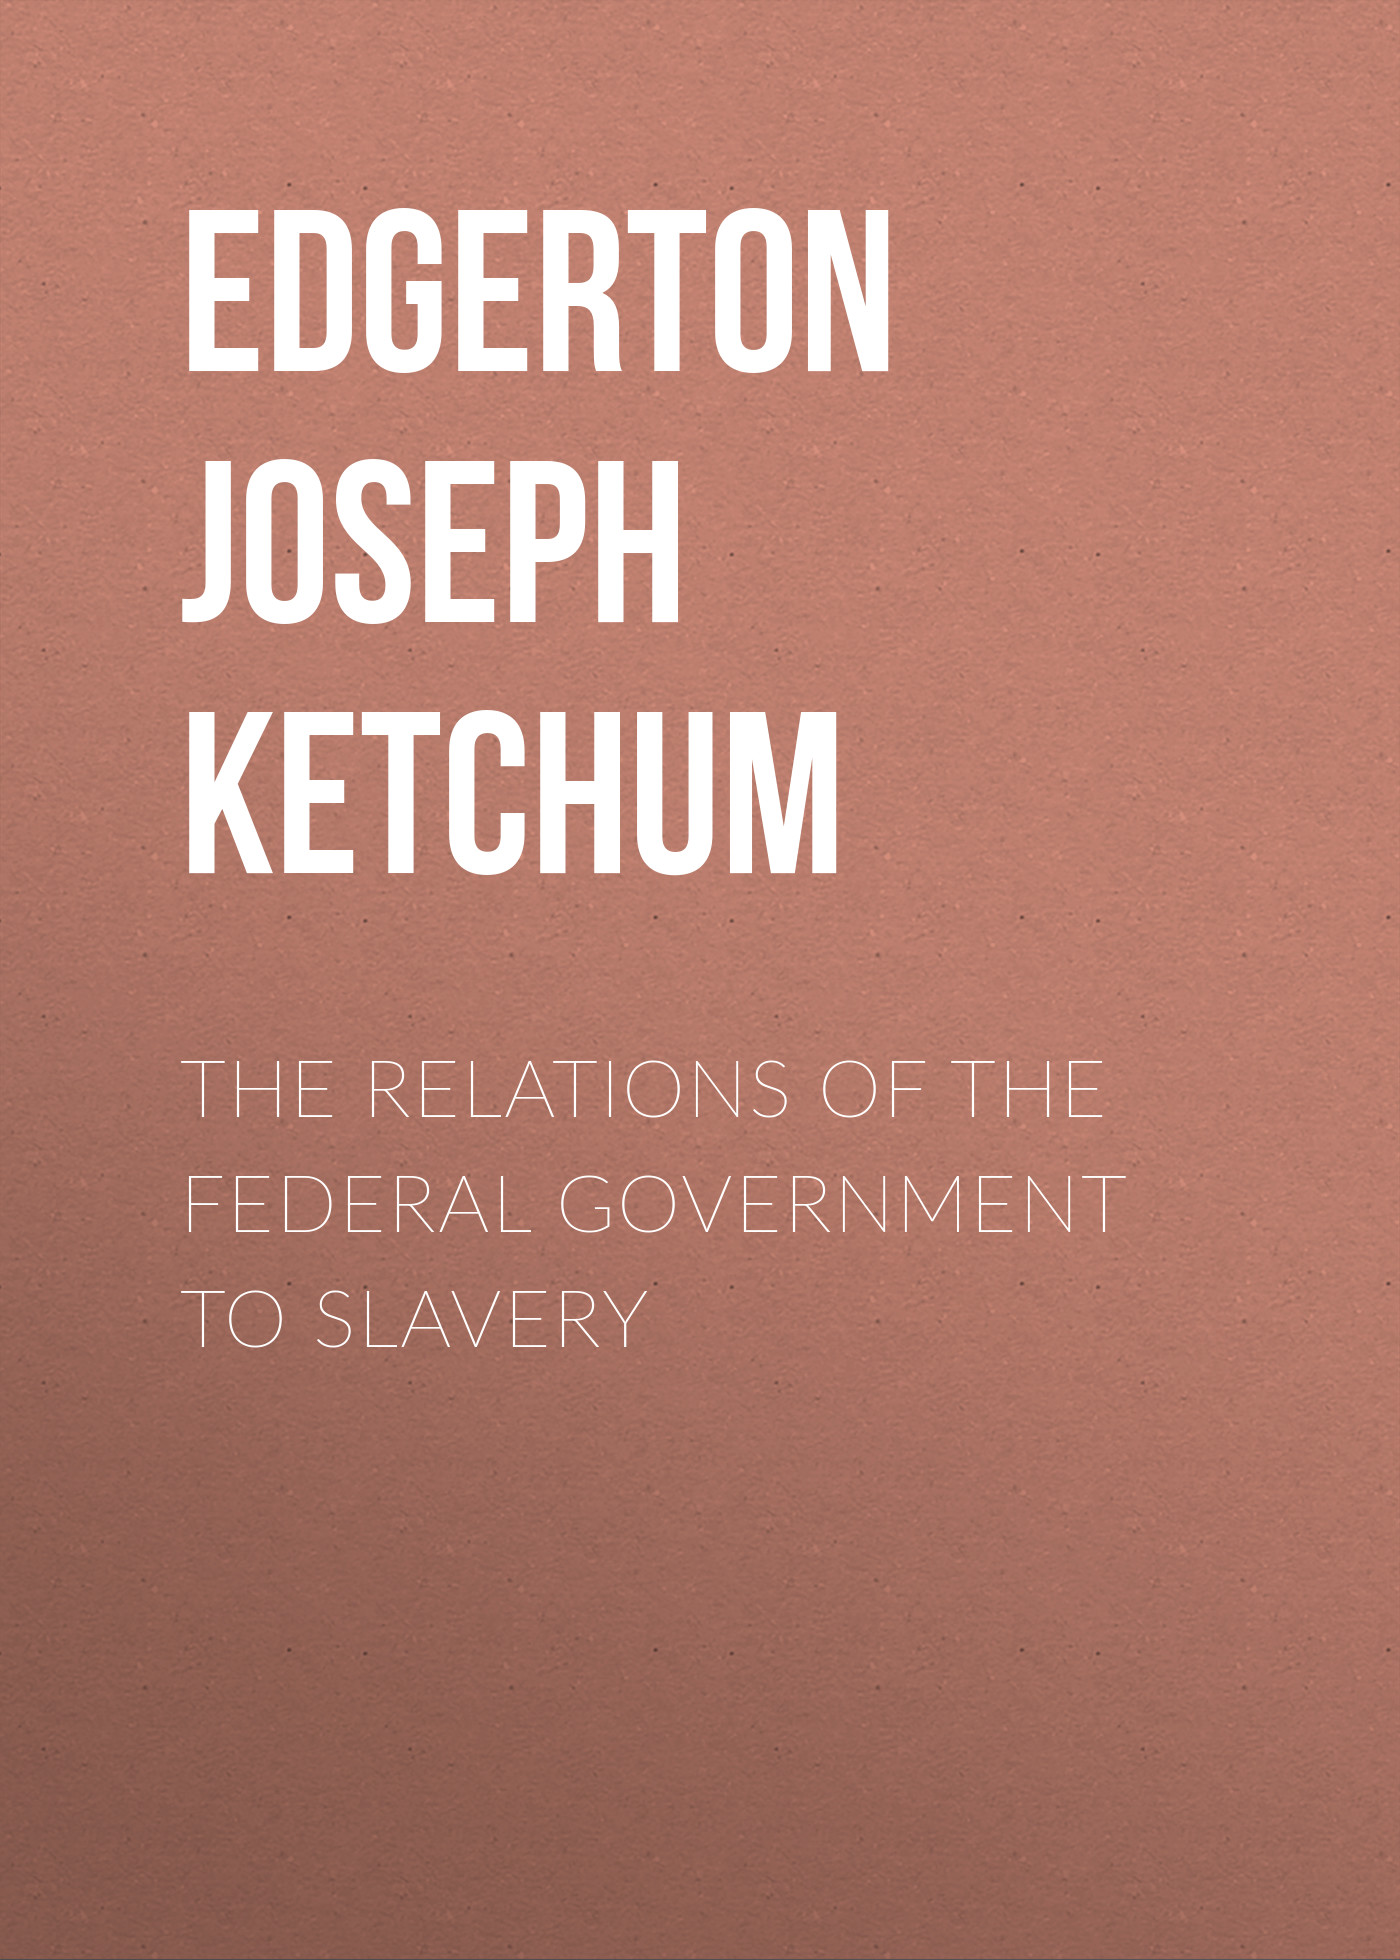 Edgerton Joseph Ketchum The Relations of the Federal Government to Slavery утюг federal